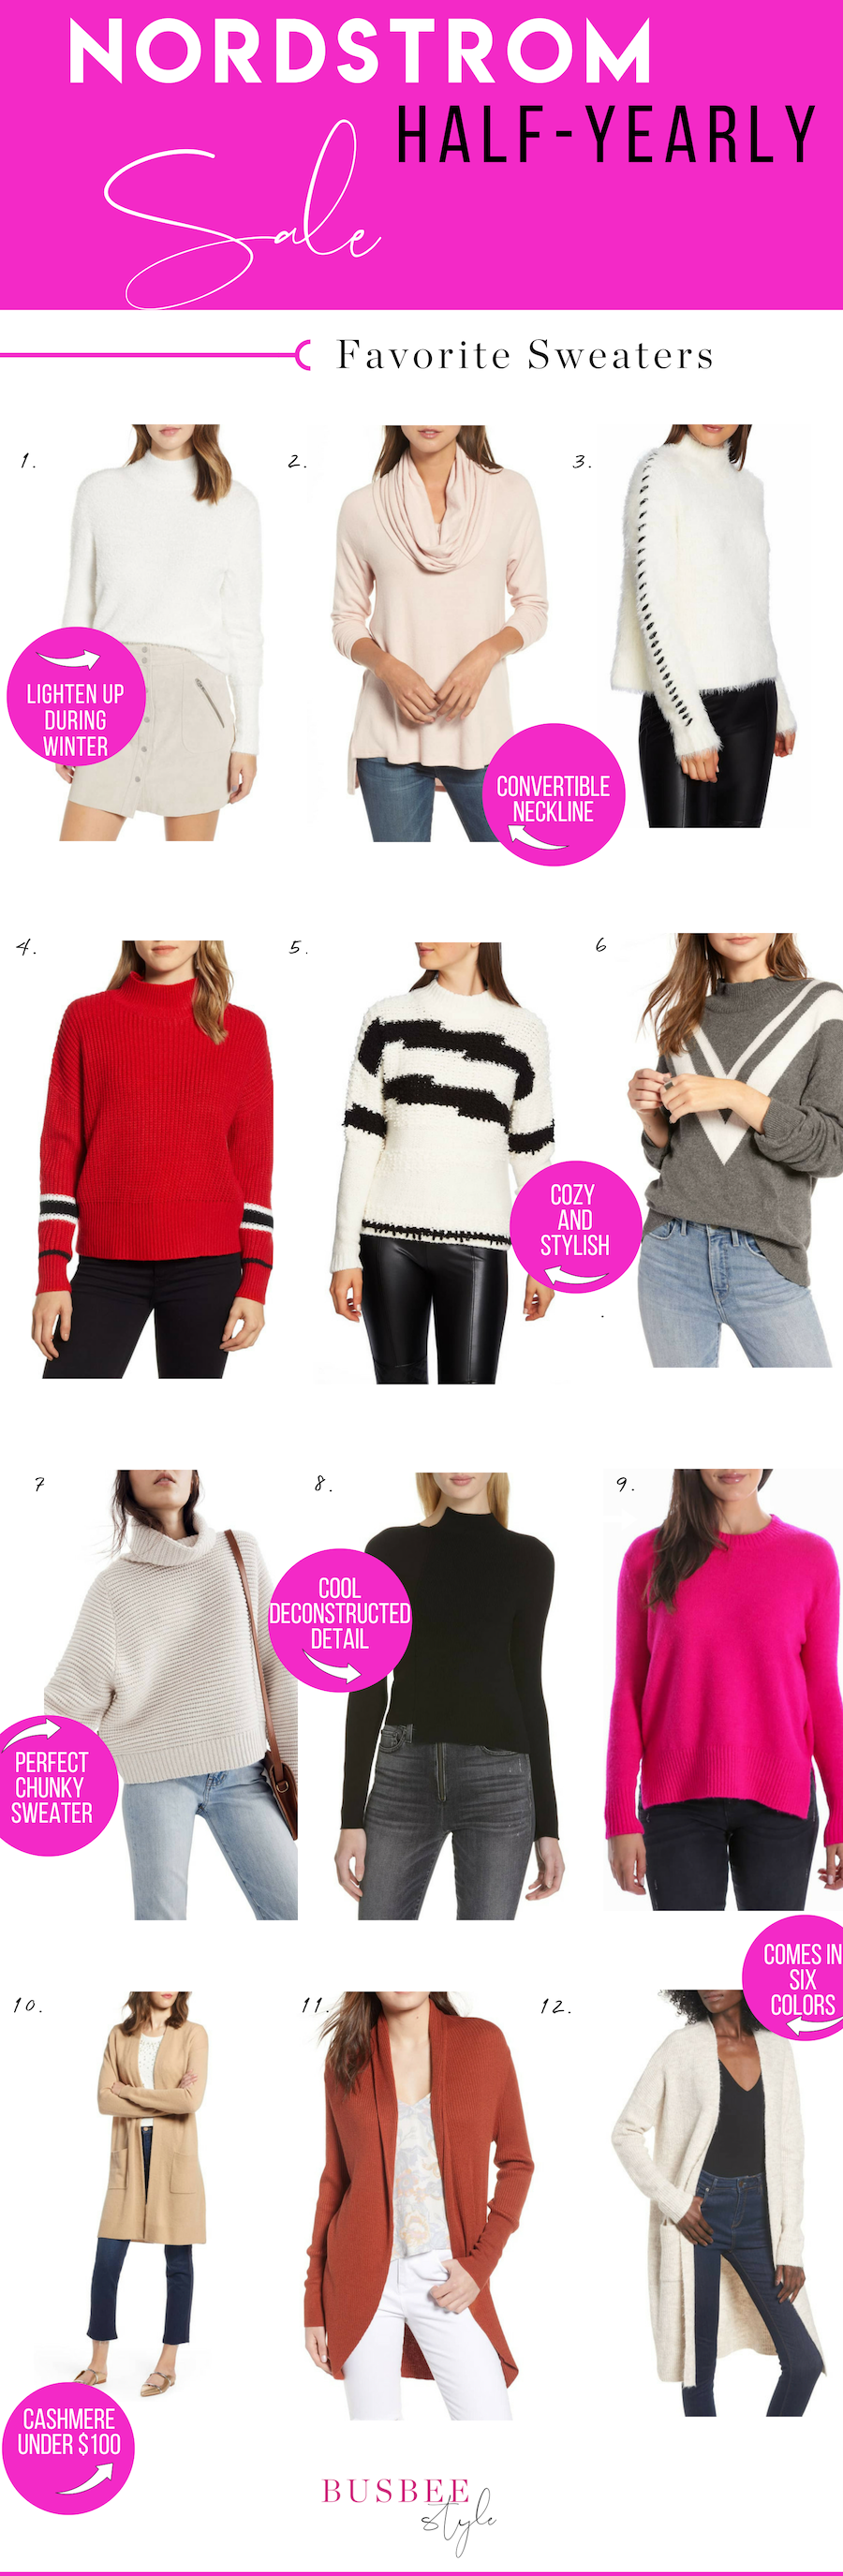 Erin Busbee of BusbeeStyle.com sharing 12 of the best sweaters and cardigans for the Nordstrom Half-Yearly Sale of 2018